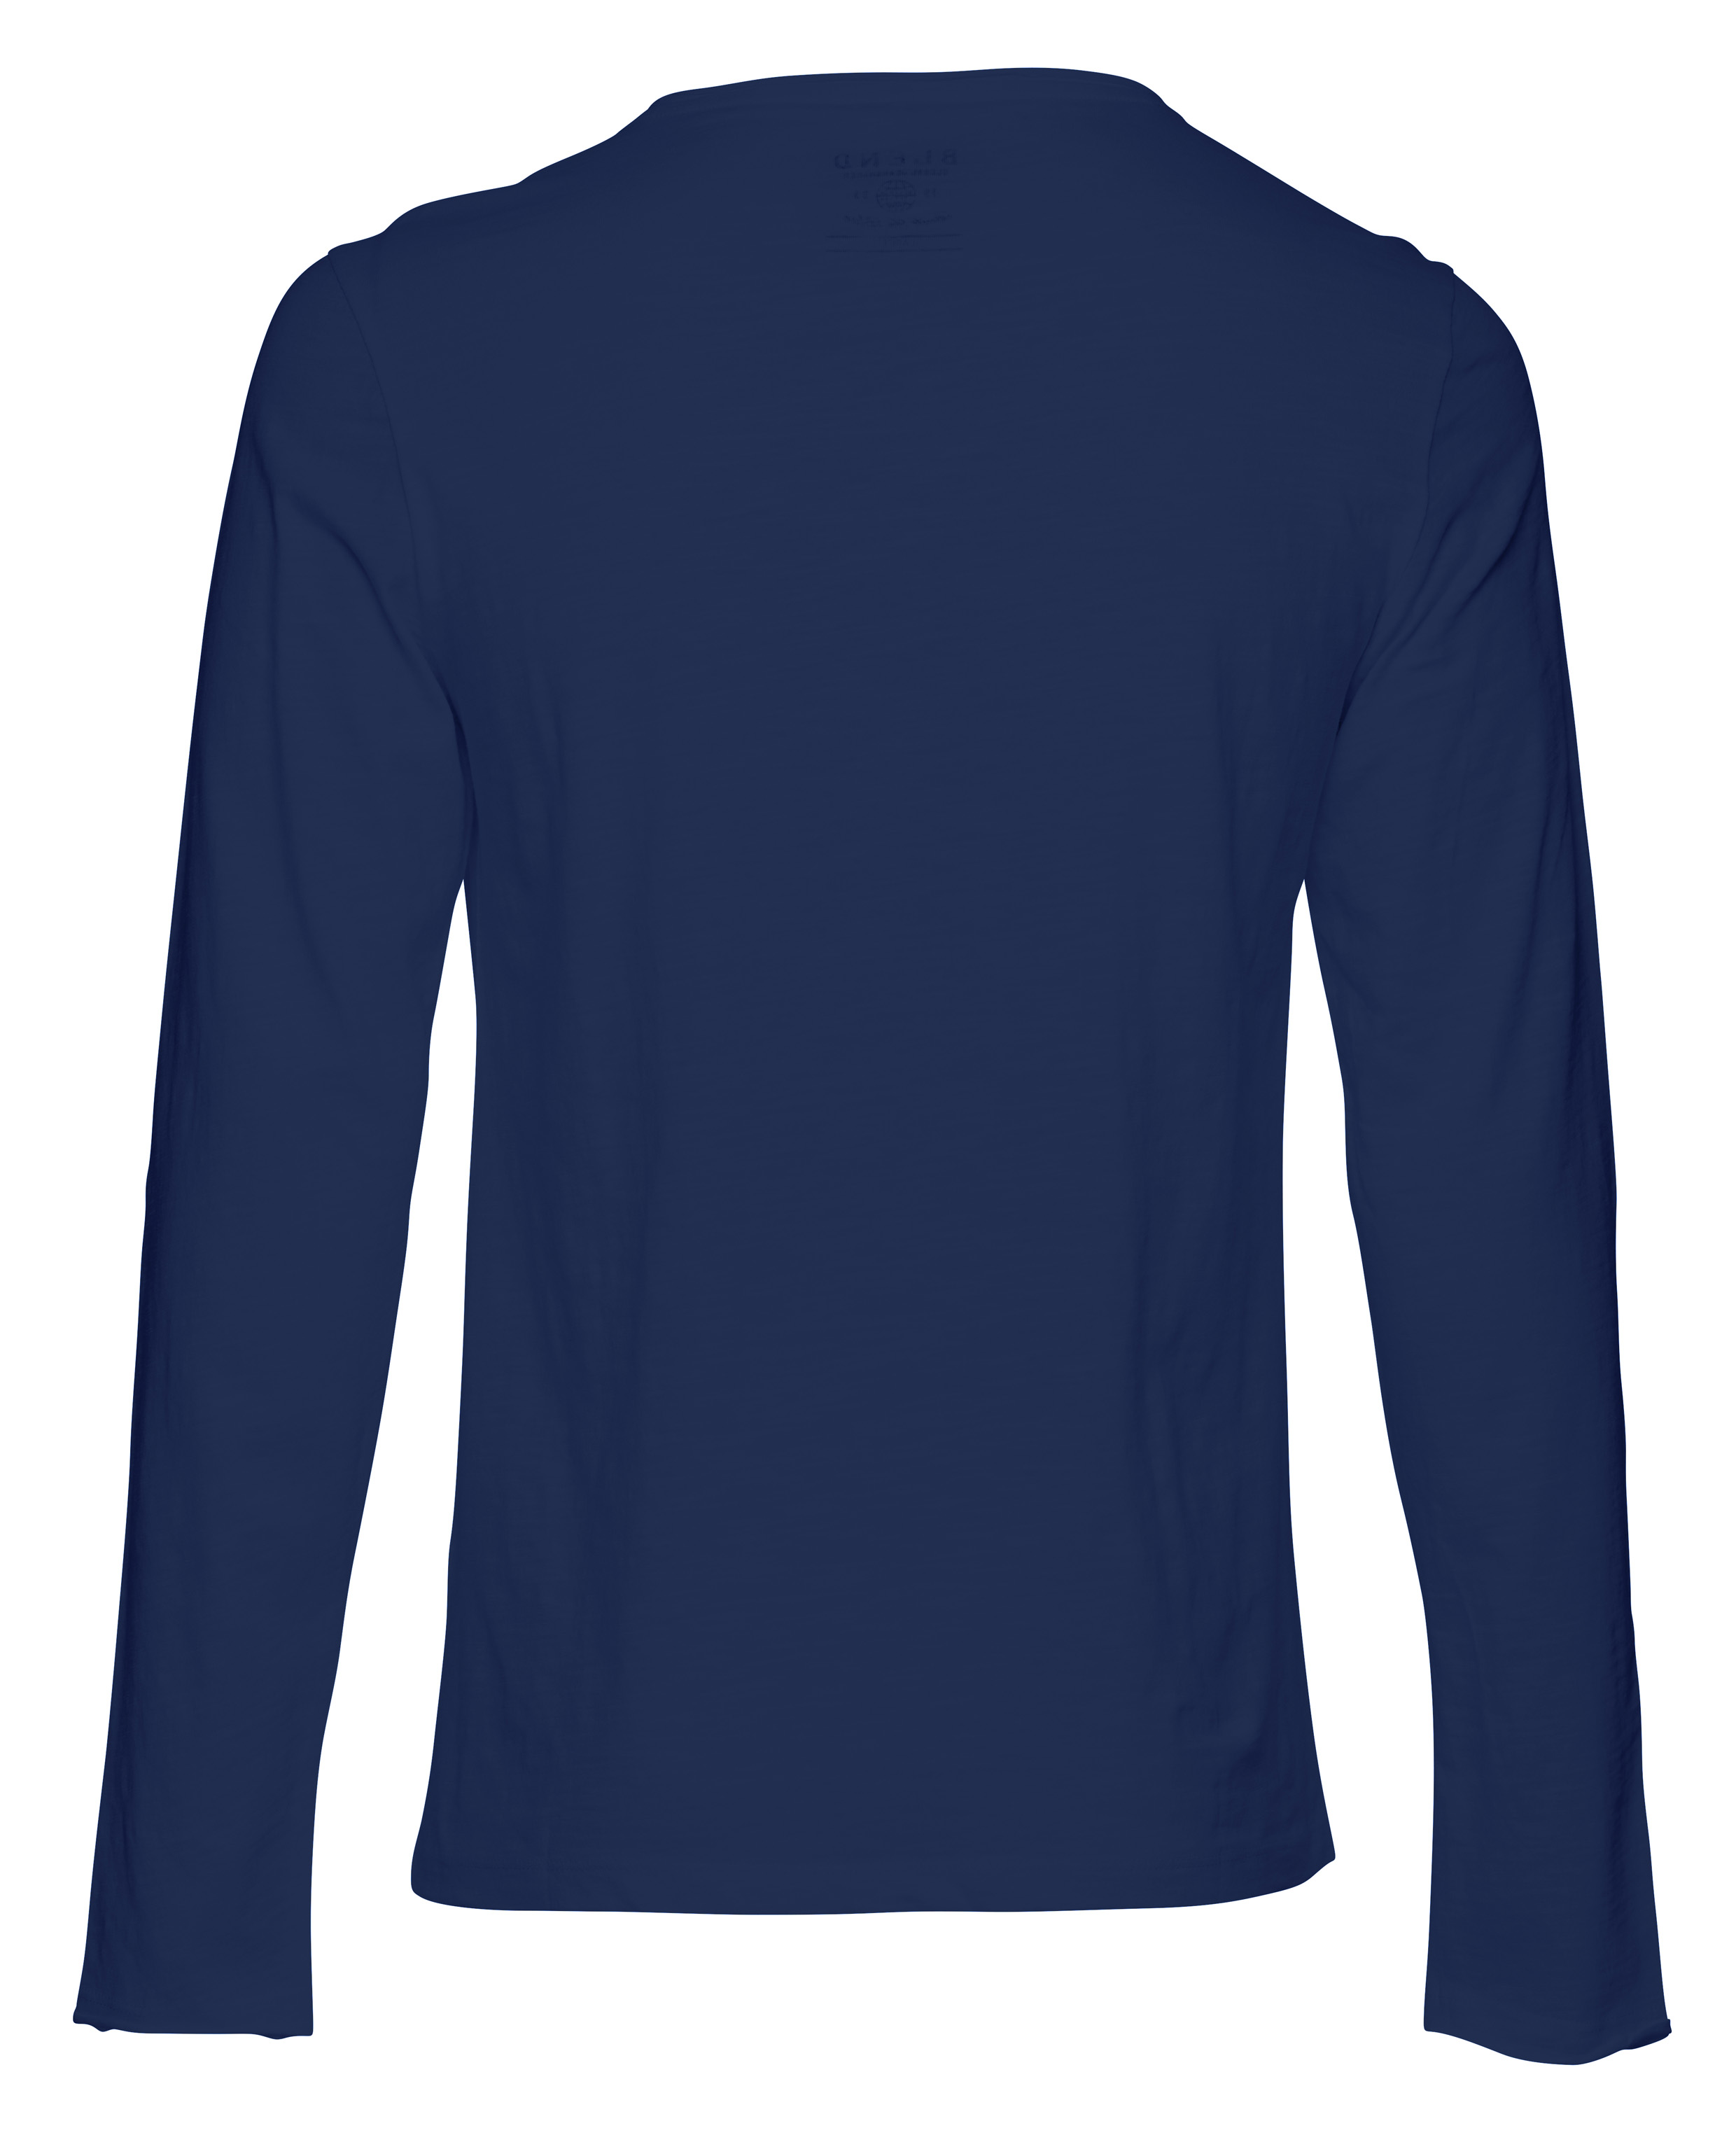 Midnight Blue Long sleeved T-shirt fra Blend He – Køb Midnight Blue Long sleeved T-shirt fra str. S-3XL her